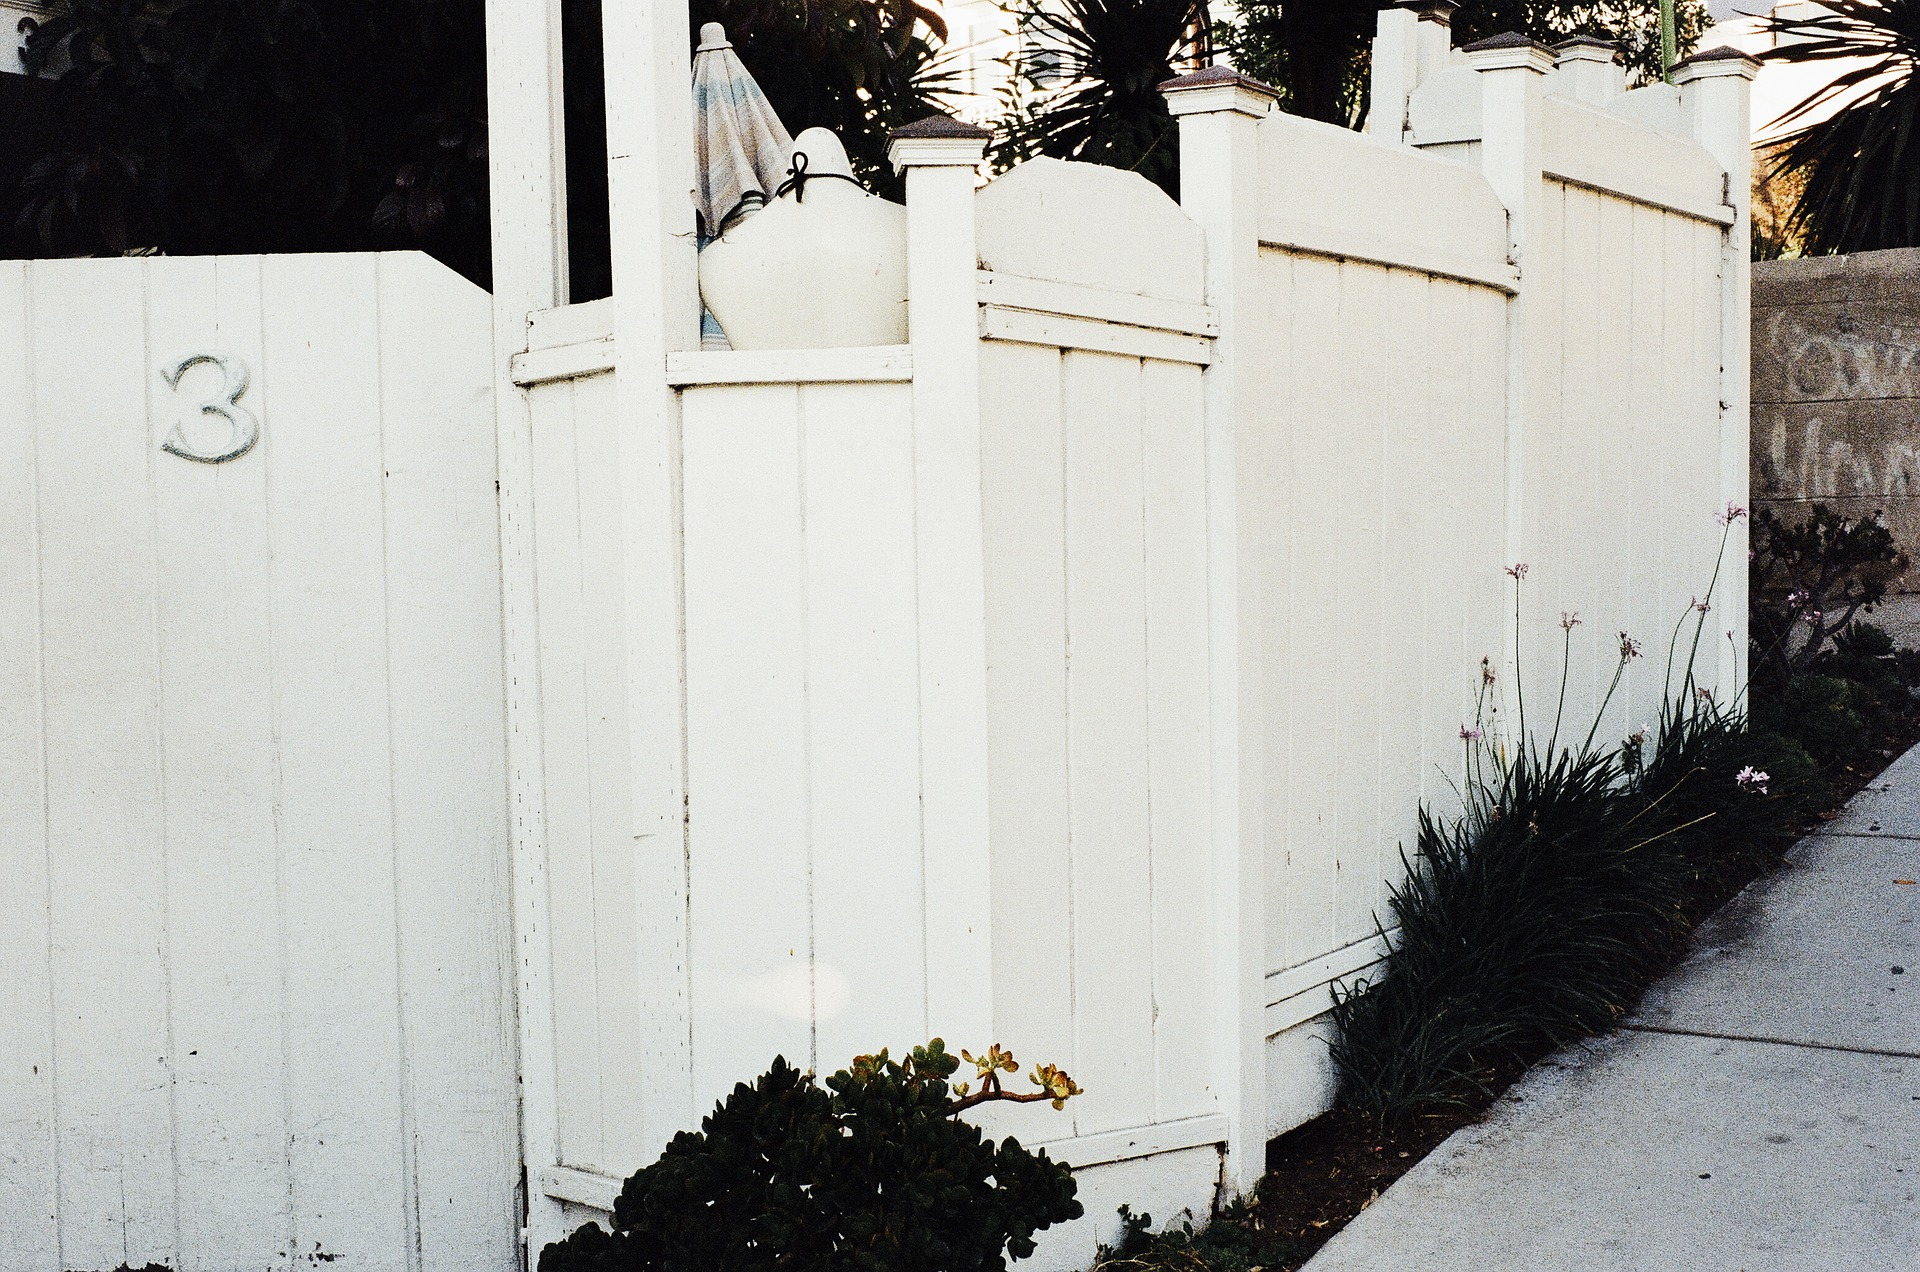 Cleaning Your White Picket Fence in 3 Easy Steps